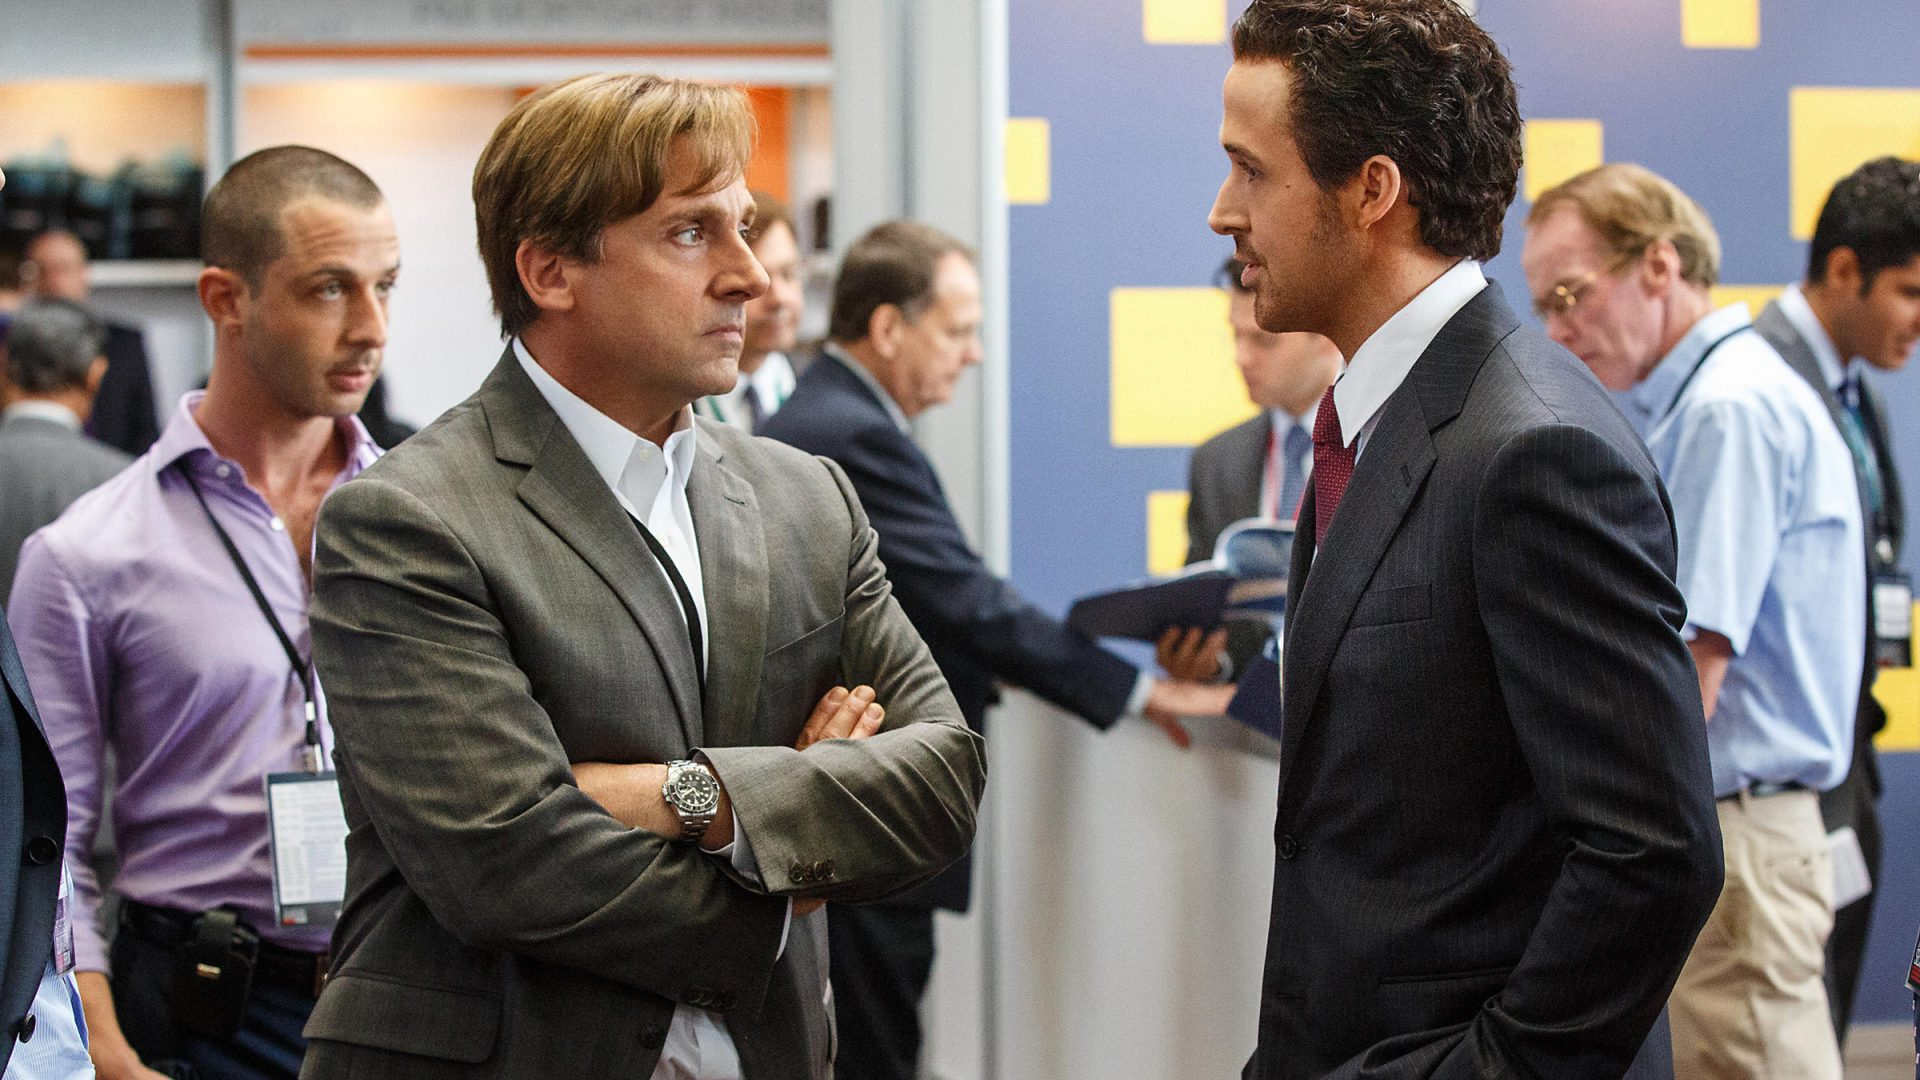 Stávka na neistotu / The Big Short (2015)